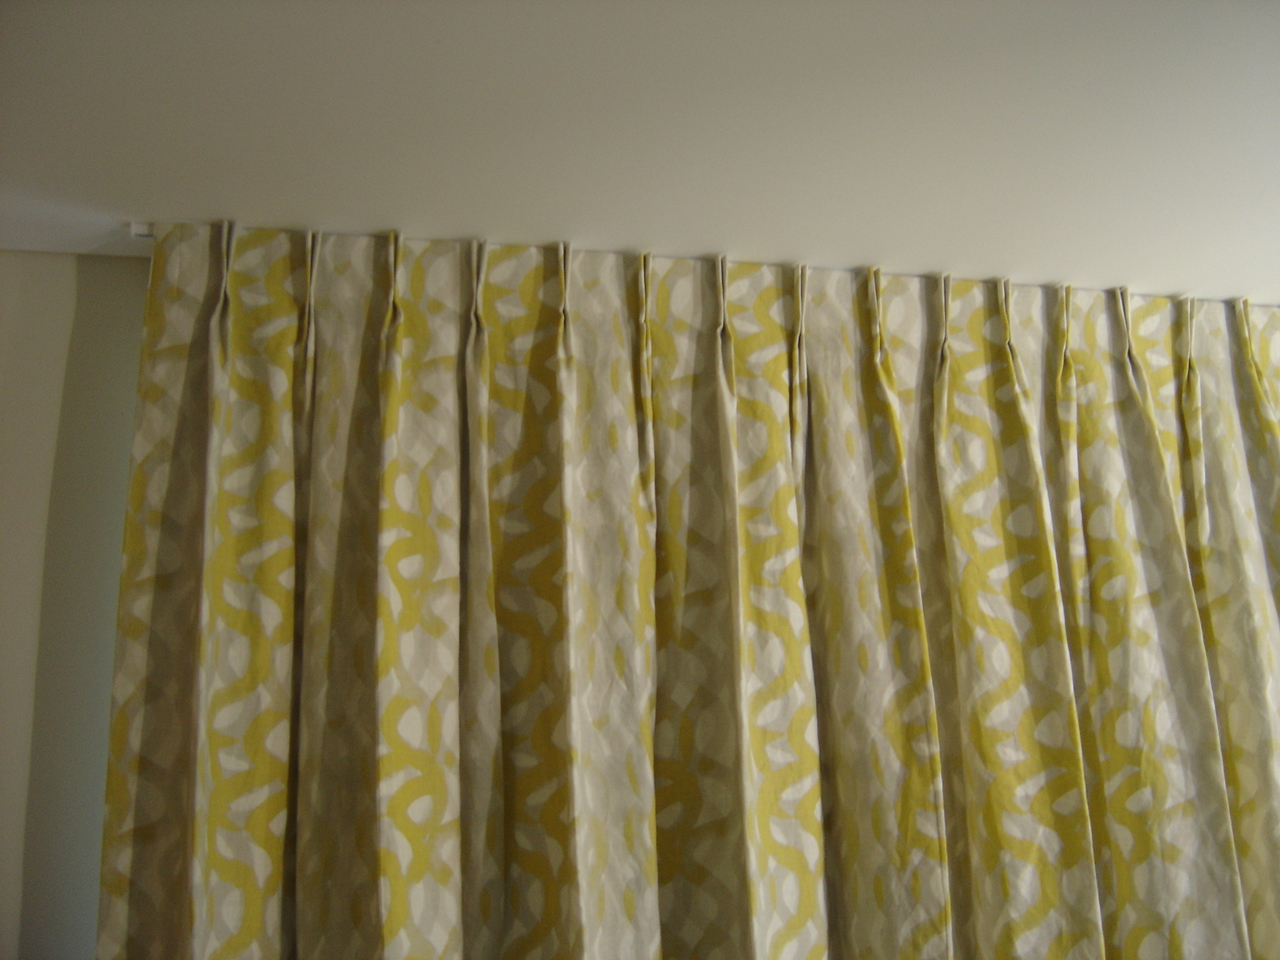 treatments panel the achim white curtains b windsor marsala window pinch in pleat pleats curtain w drapes n